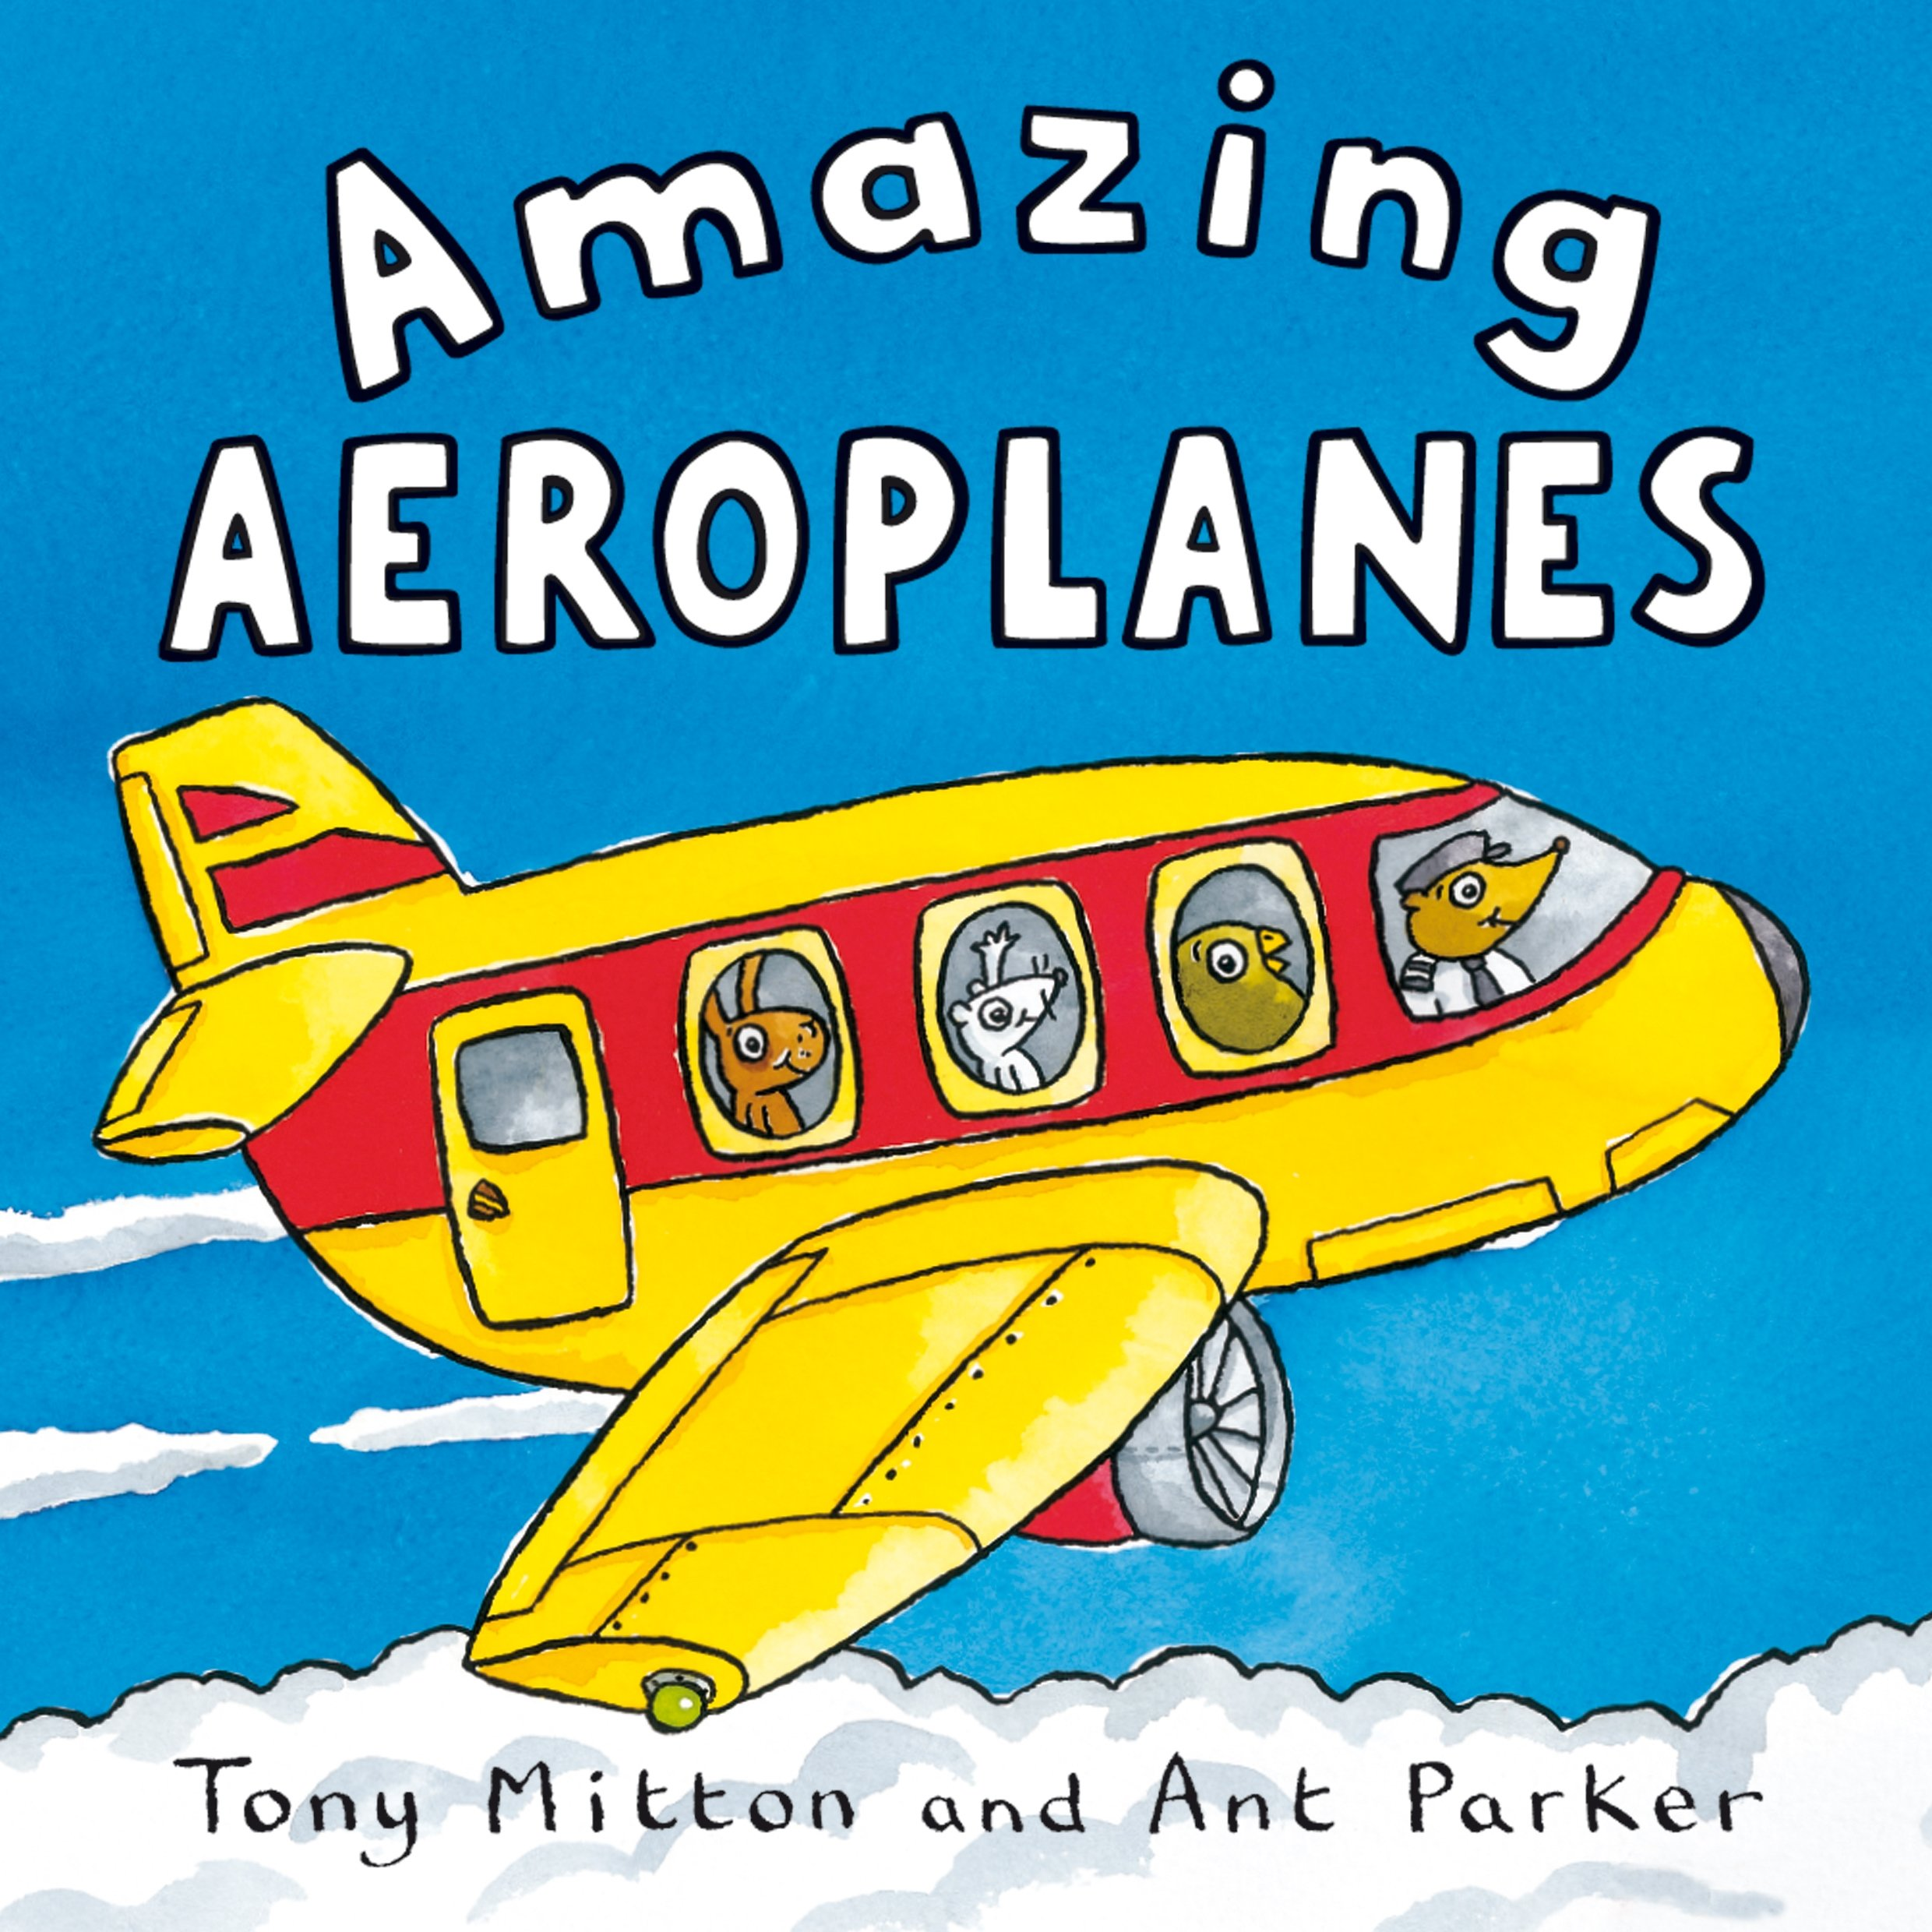 Amazing Aeroplanes: Amazon.co.uk: Tony MITTON, Ant Parker: Books